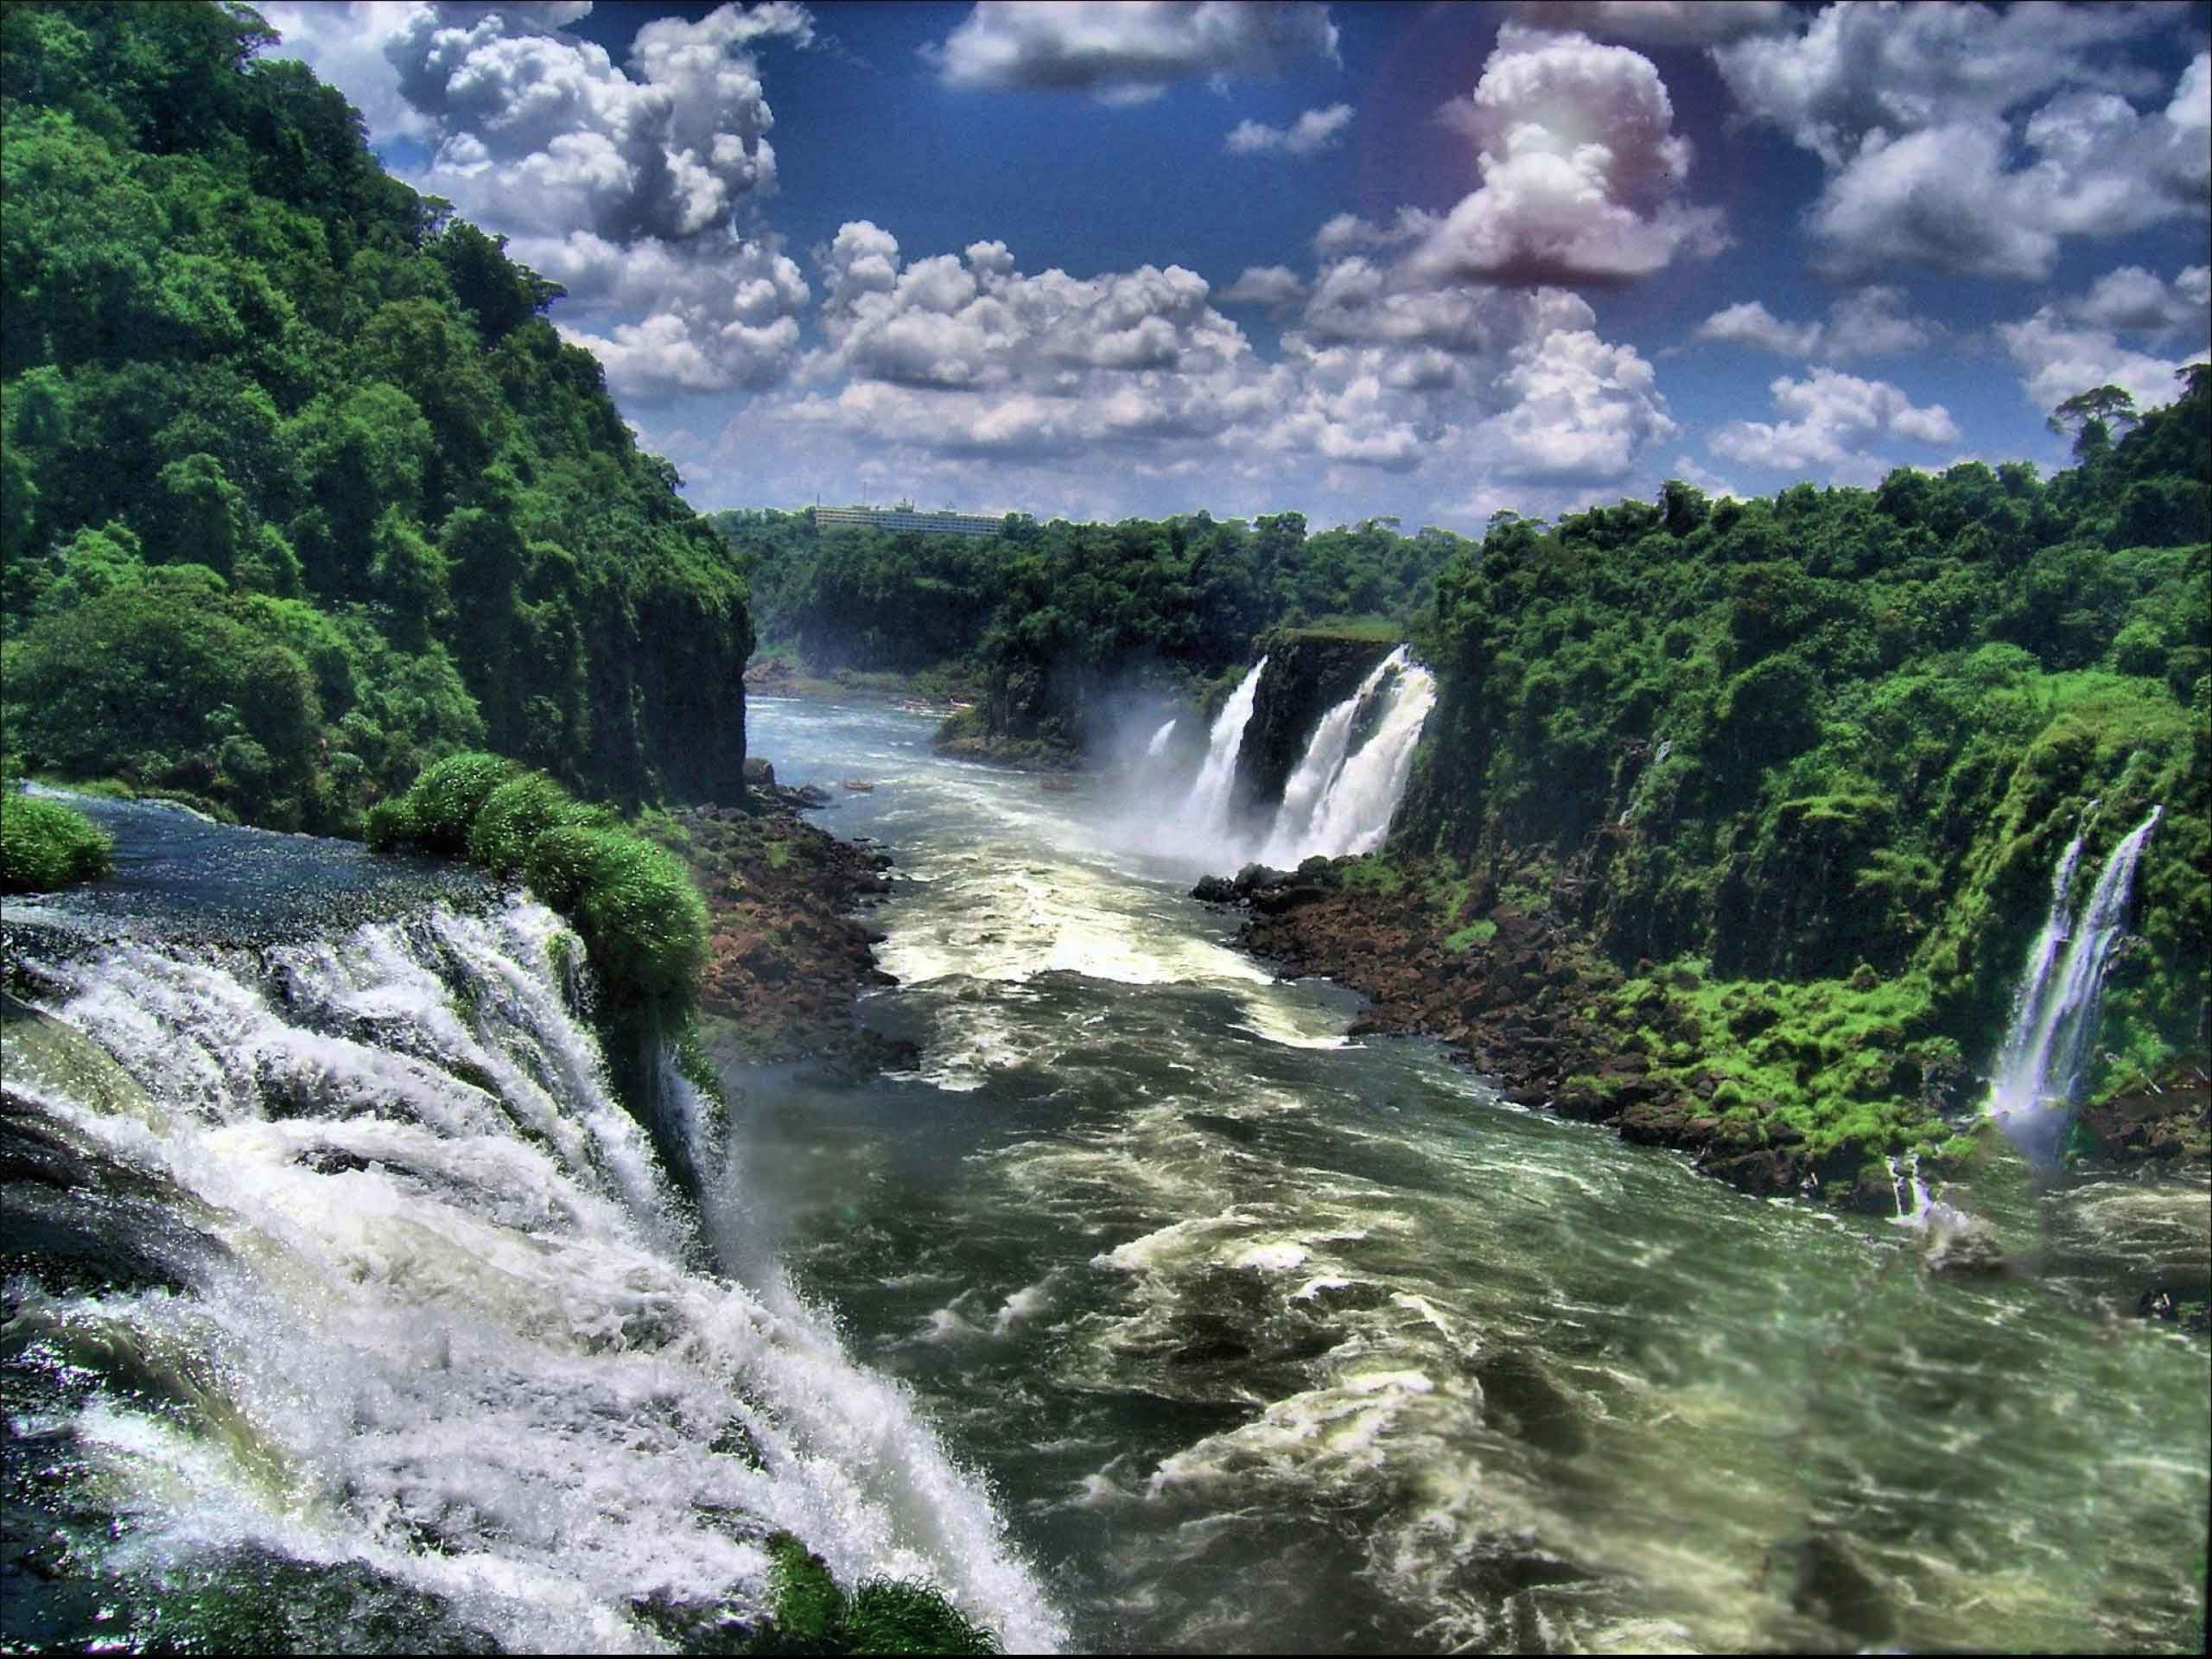 Iguazu Falls Brazil Wallpaper Iguazu Falls Wallpaper 61 Images